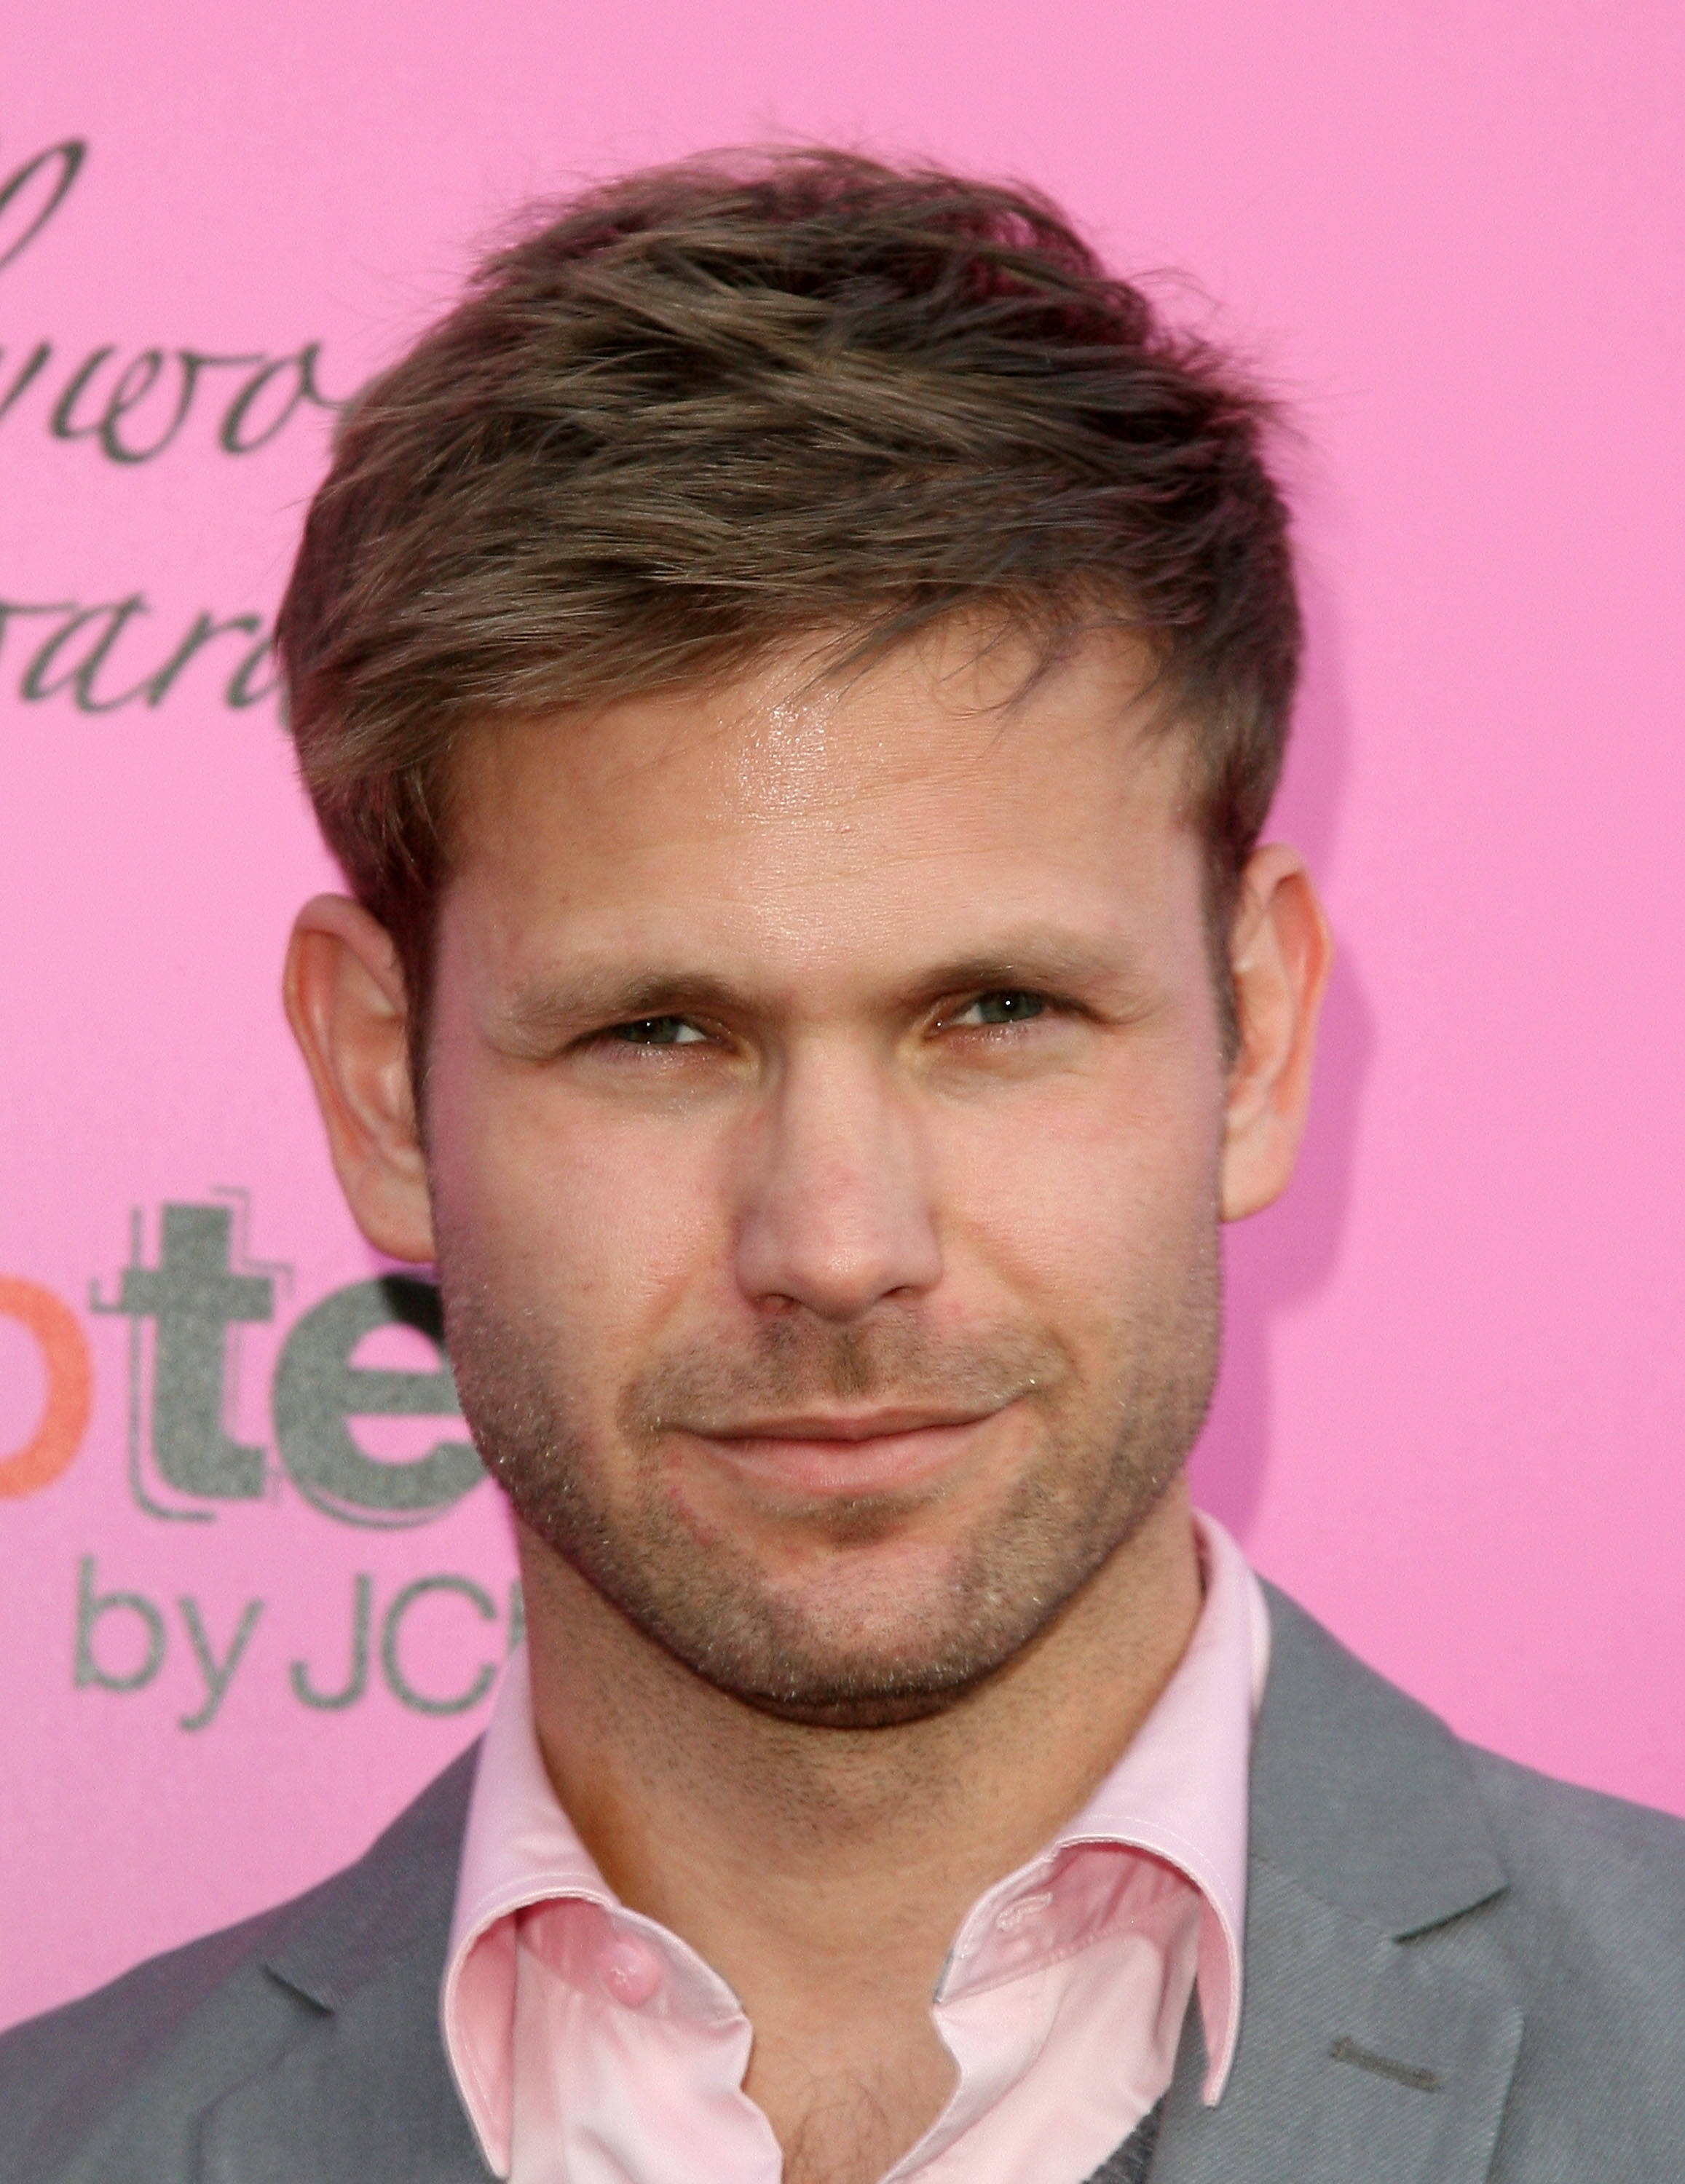 matthew davis and wifematthew davis art, matthew davis gif, matthew davis height, matthew davis facebook, matthew davis and brittany sharp, matthew davis artist, matthew davis secret stairways, matthew davis vampire diaries, matthew davis legally blonde, matthew davis and wife, matthew davis weight, matthew davis actor, matthew davis instagram, matthew davis tumblr, matthew davis subset games, matthew davis, matthew davis twitter, matthew davis imdb, matthew davis net worth, matthew davis wikipedia